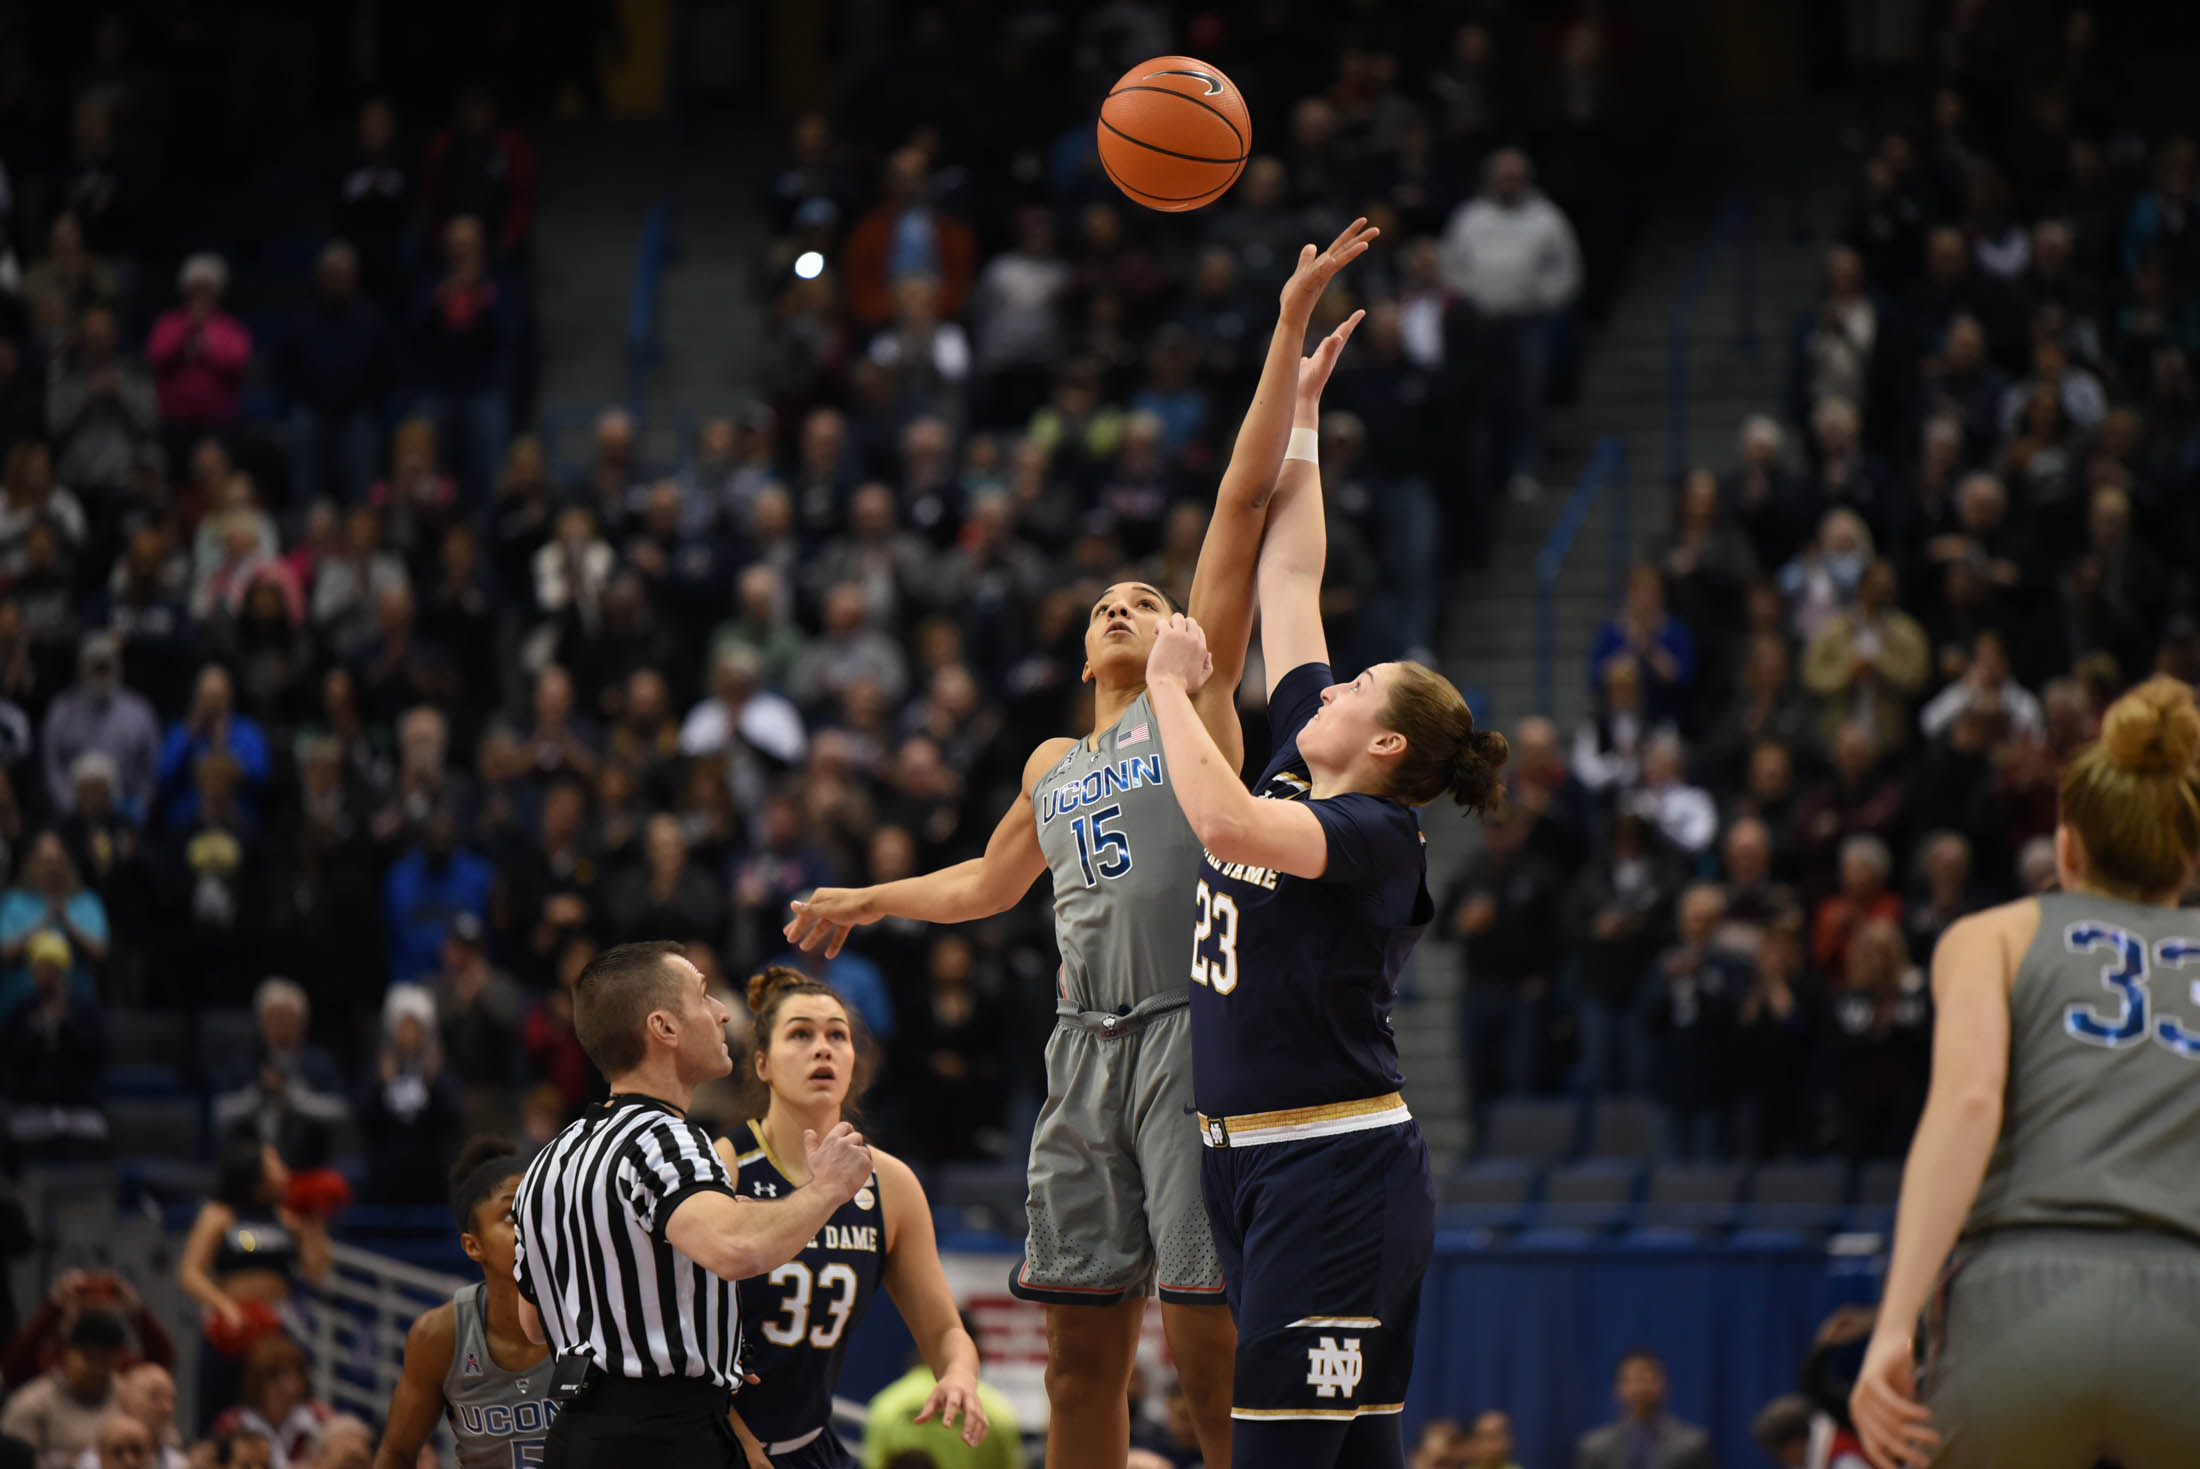 Gabby Williams jumps to win the tip off to start the game against Notre Dame. (Charlotte Lao/The Daily Campus)